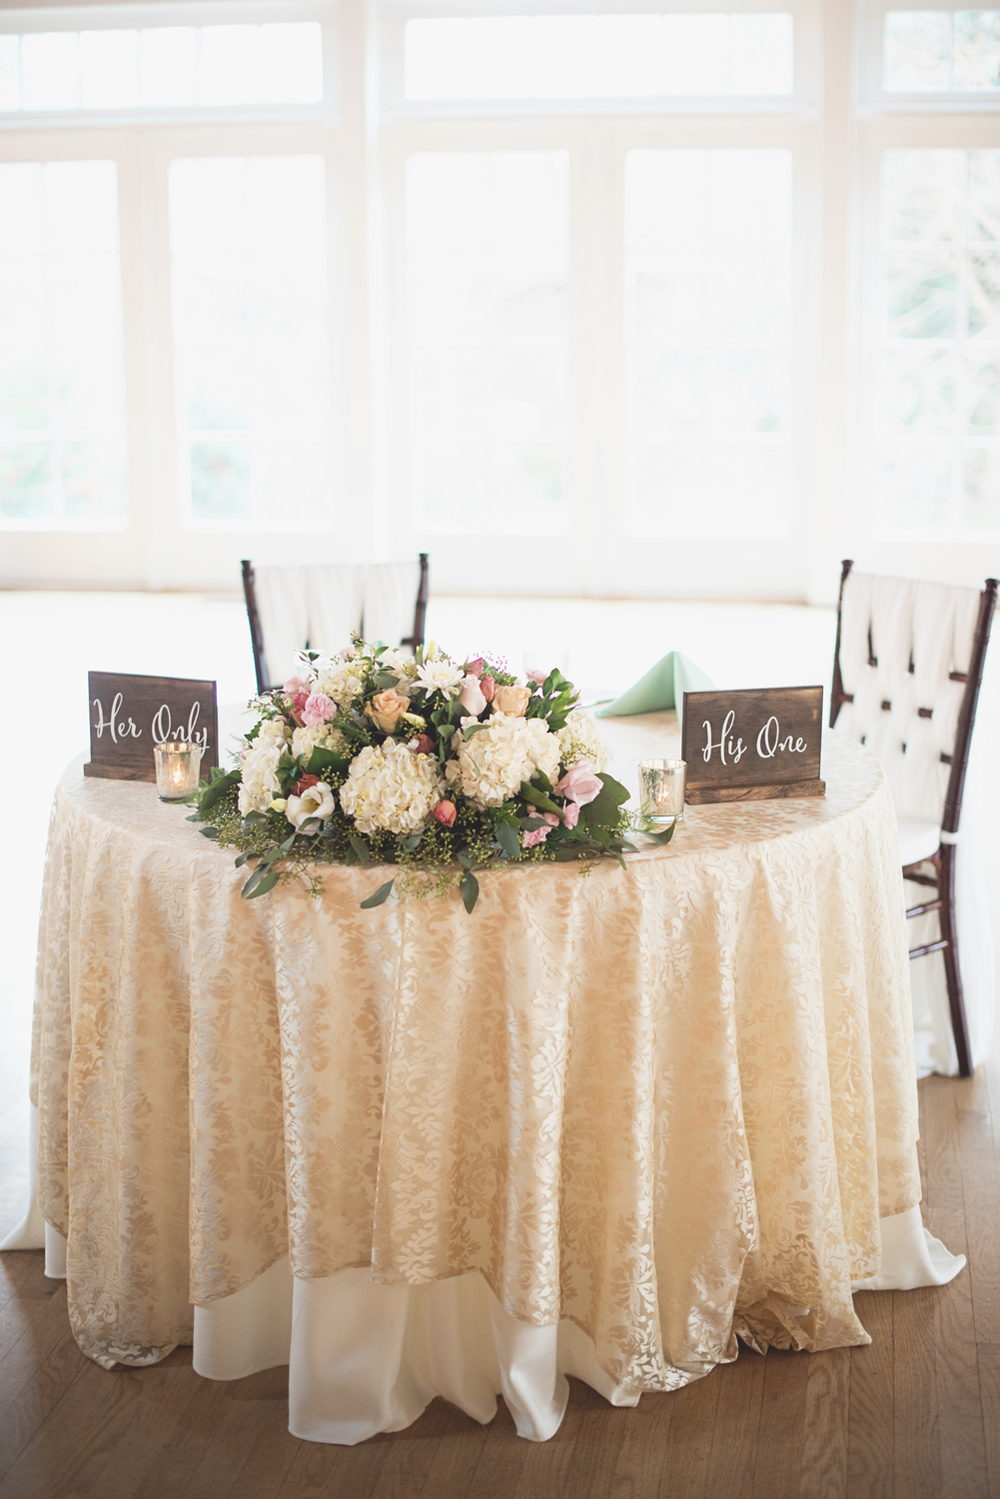 Blush, mint, and ivory spring wedding | His one Her only cute wedding signs